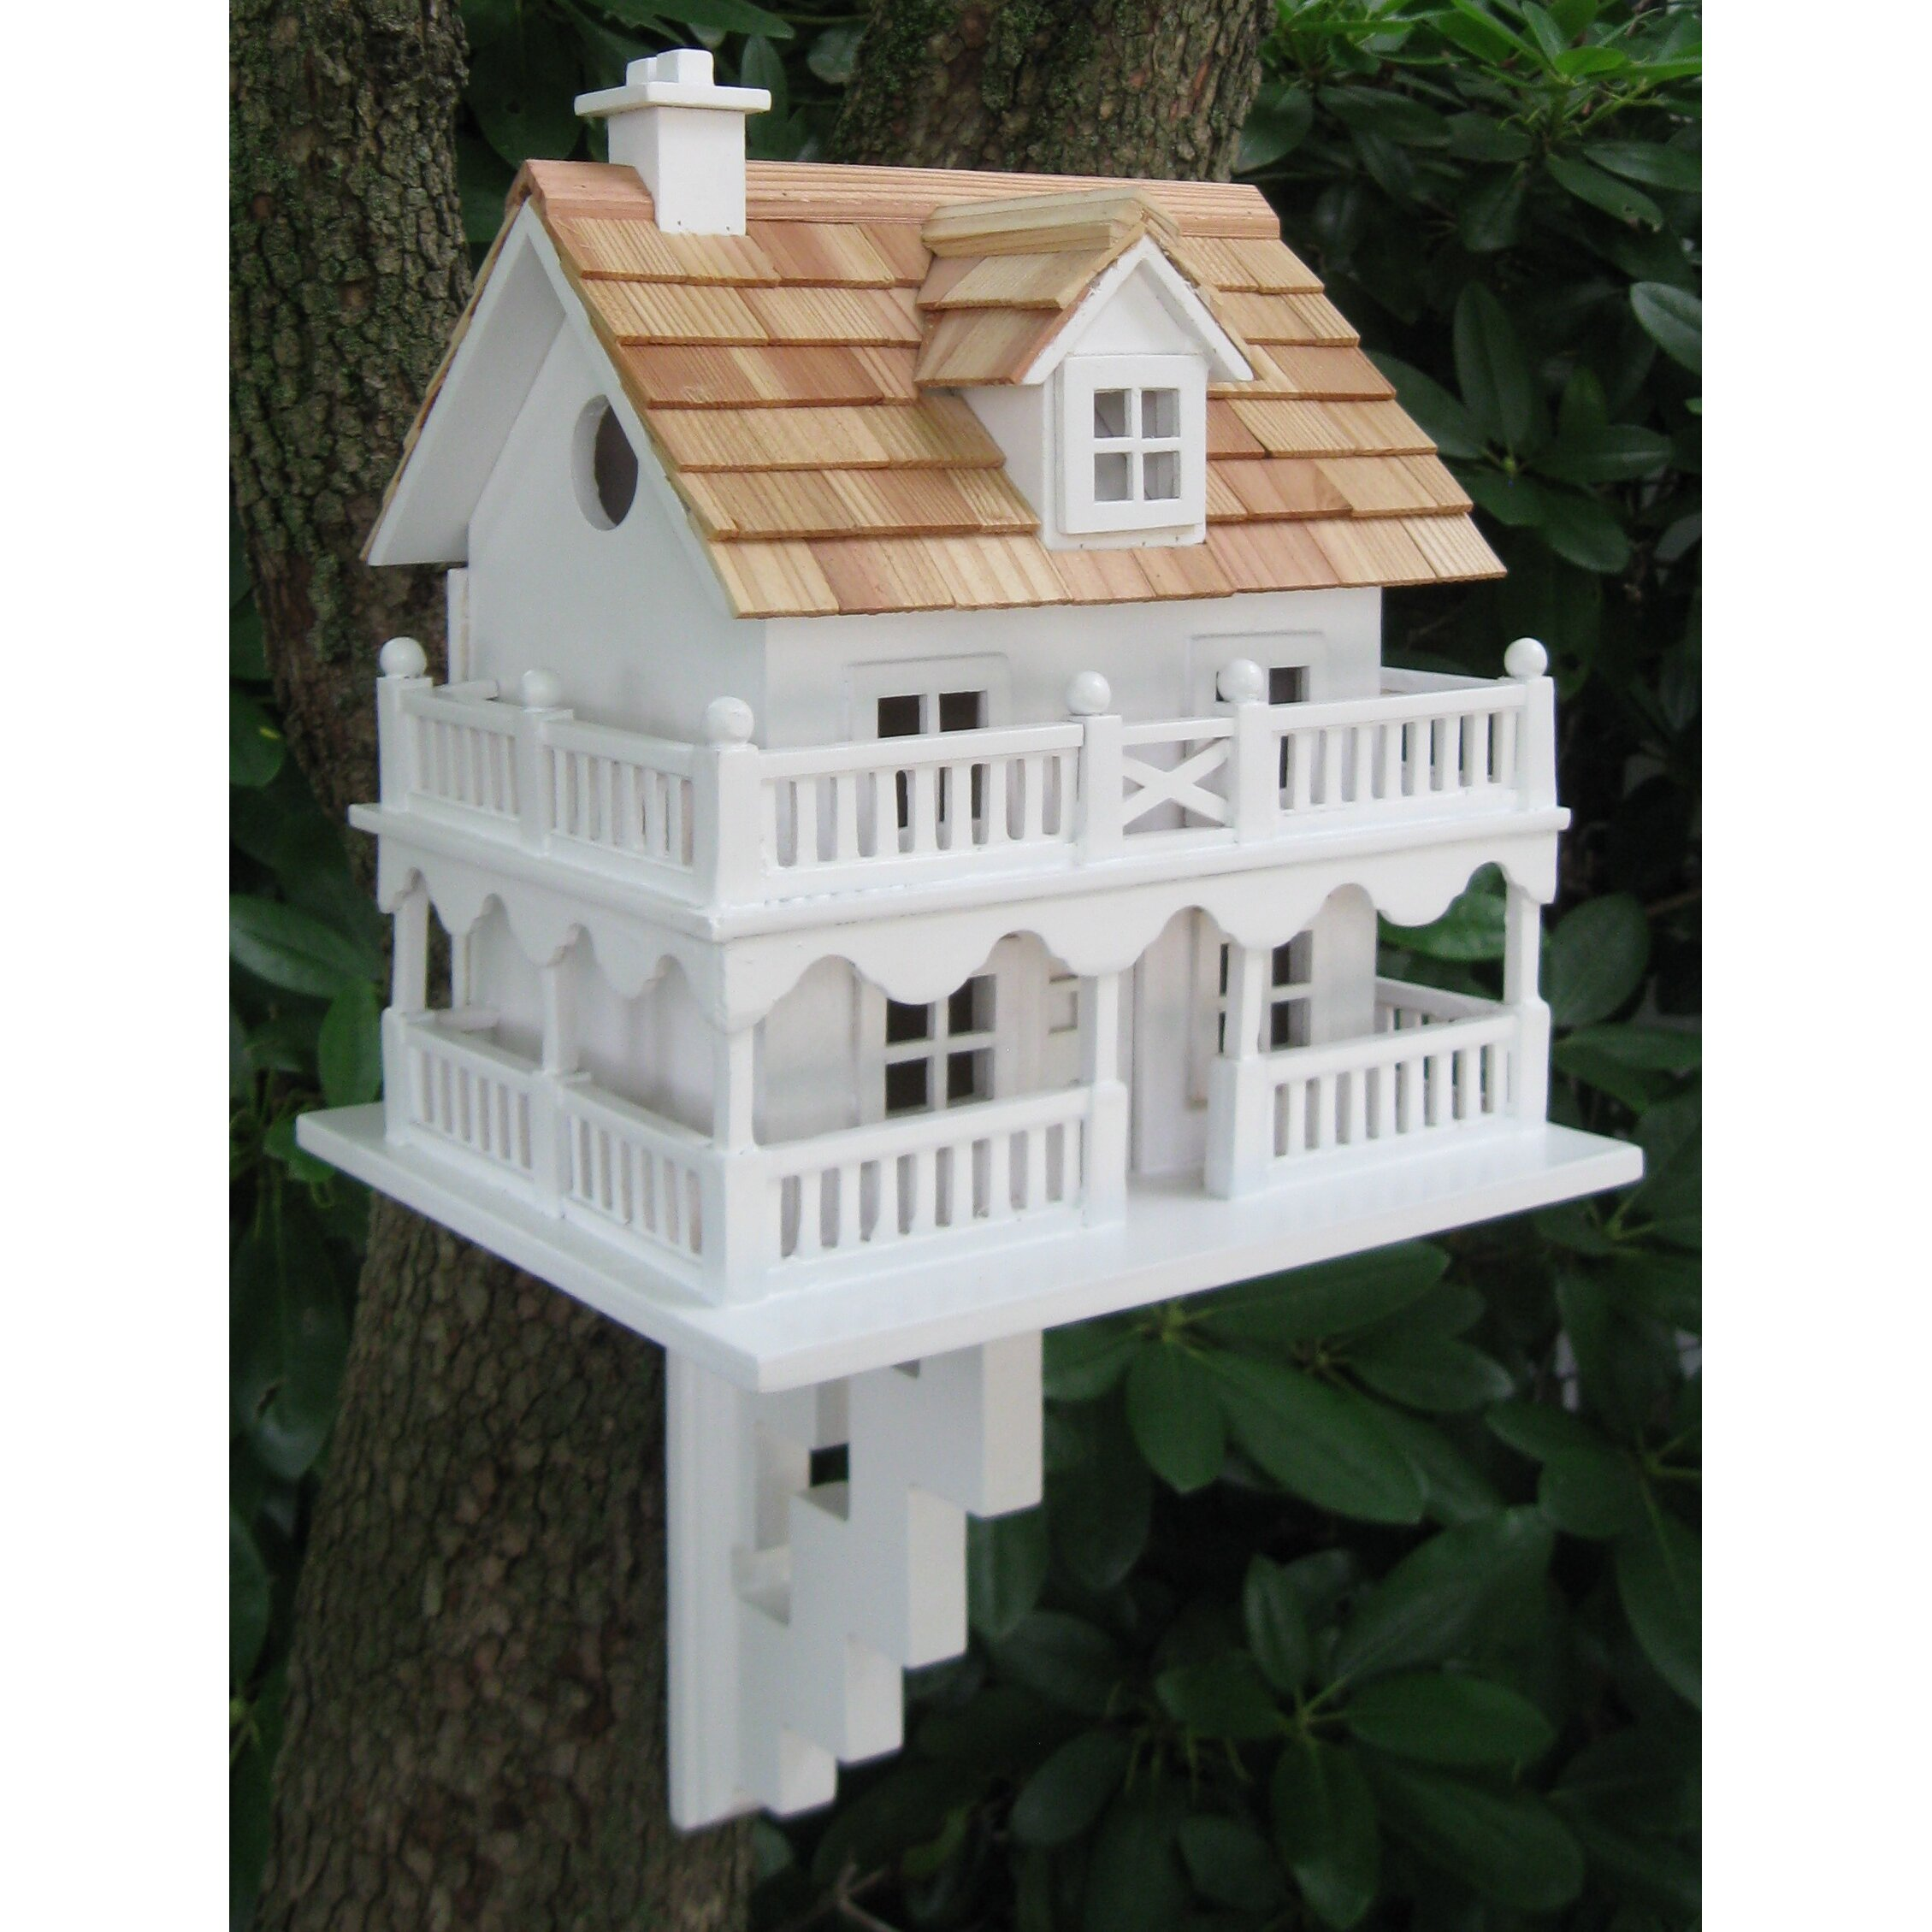 Home bazaar classic series novelty cottage birdhouse with for Classic homes reviews